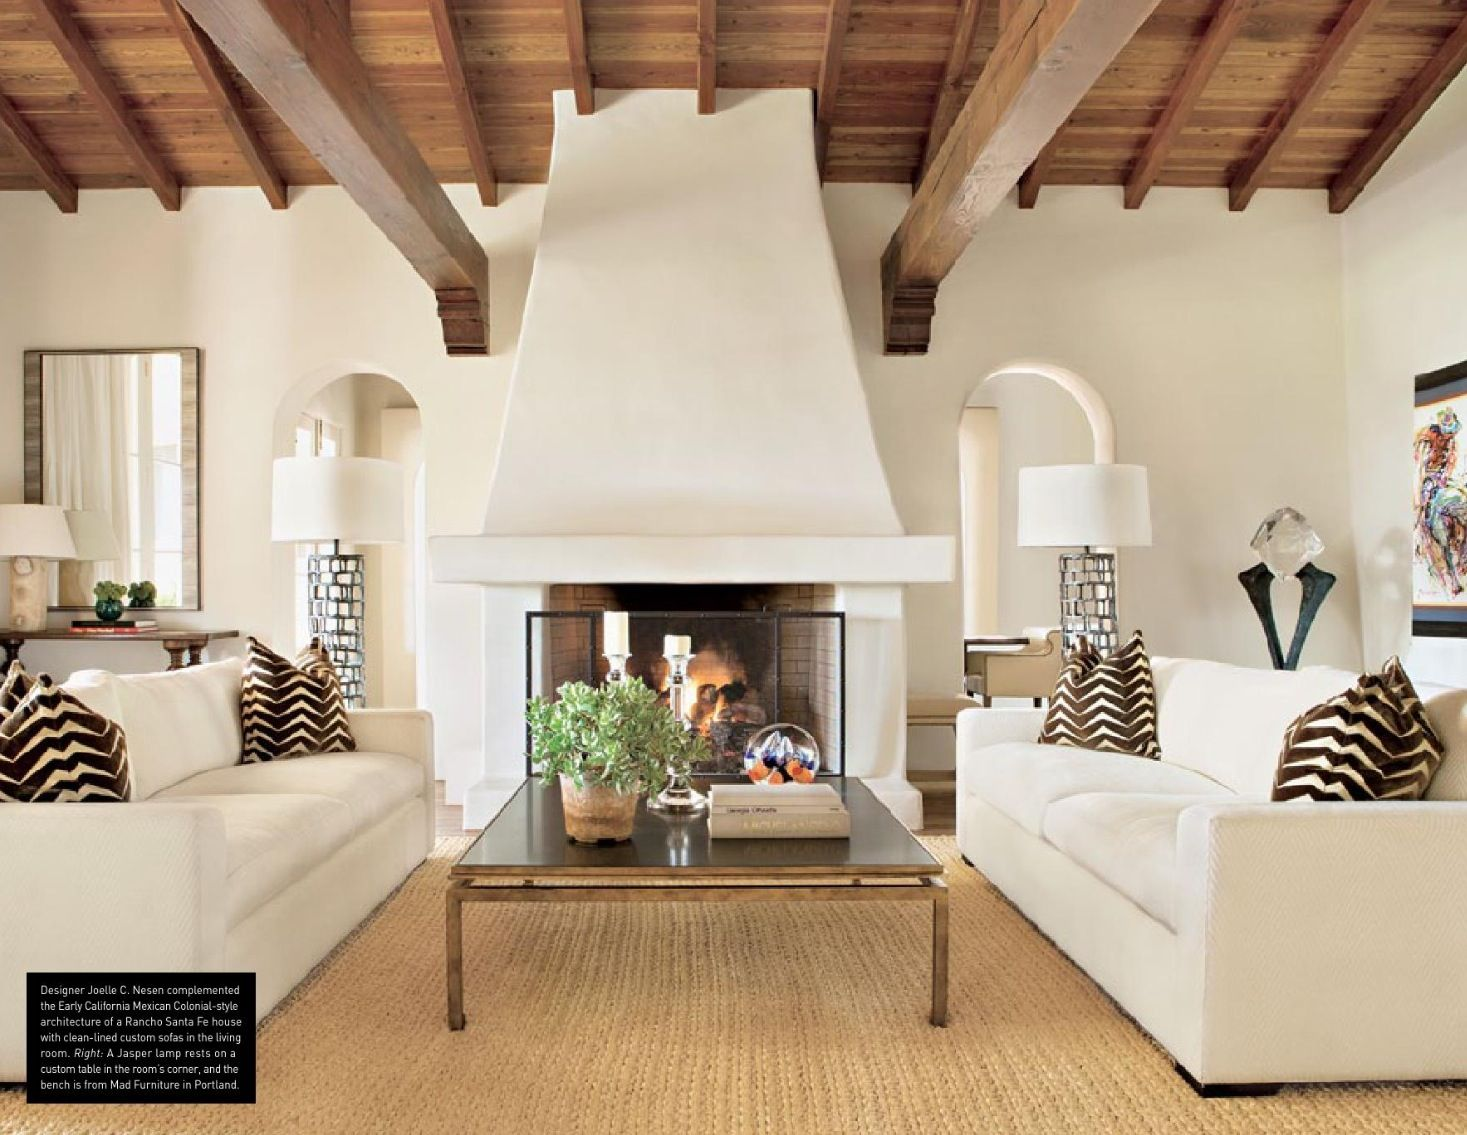 Fireplace design...add a wooden mantle that matches the wooden beams ...